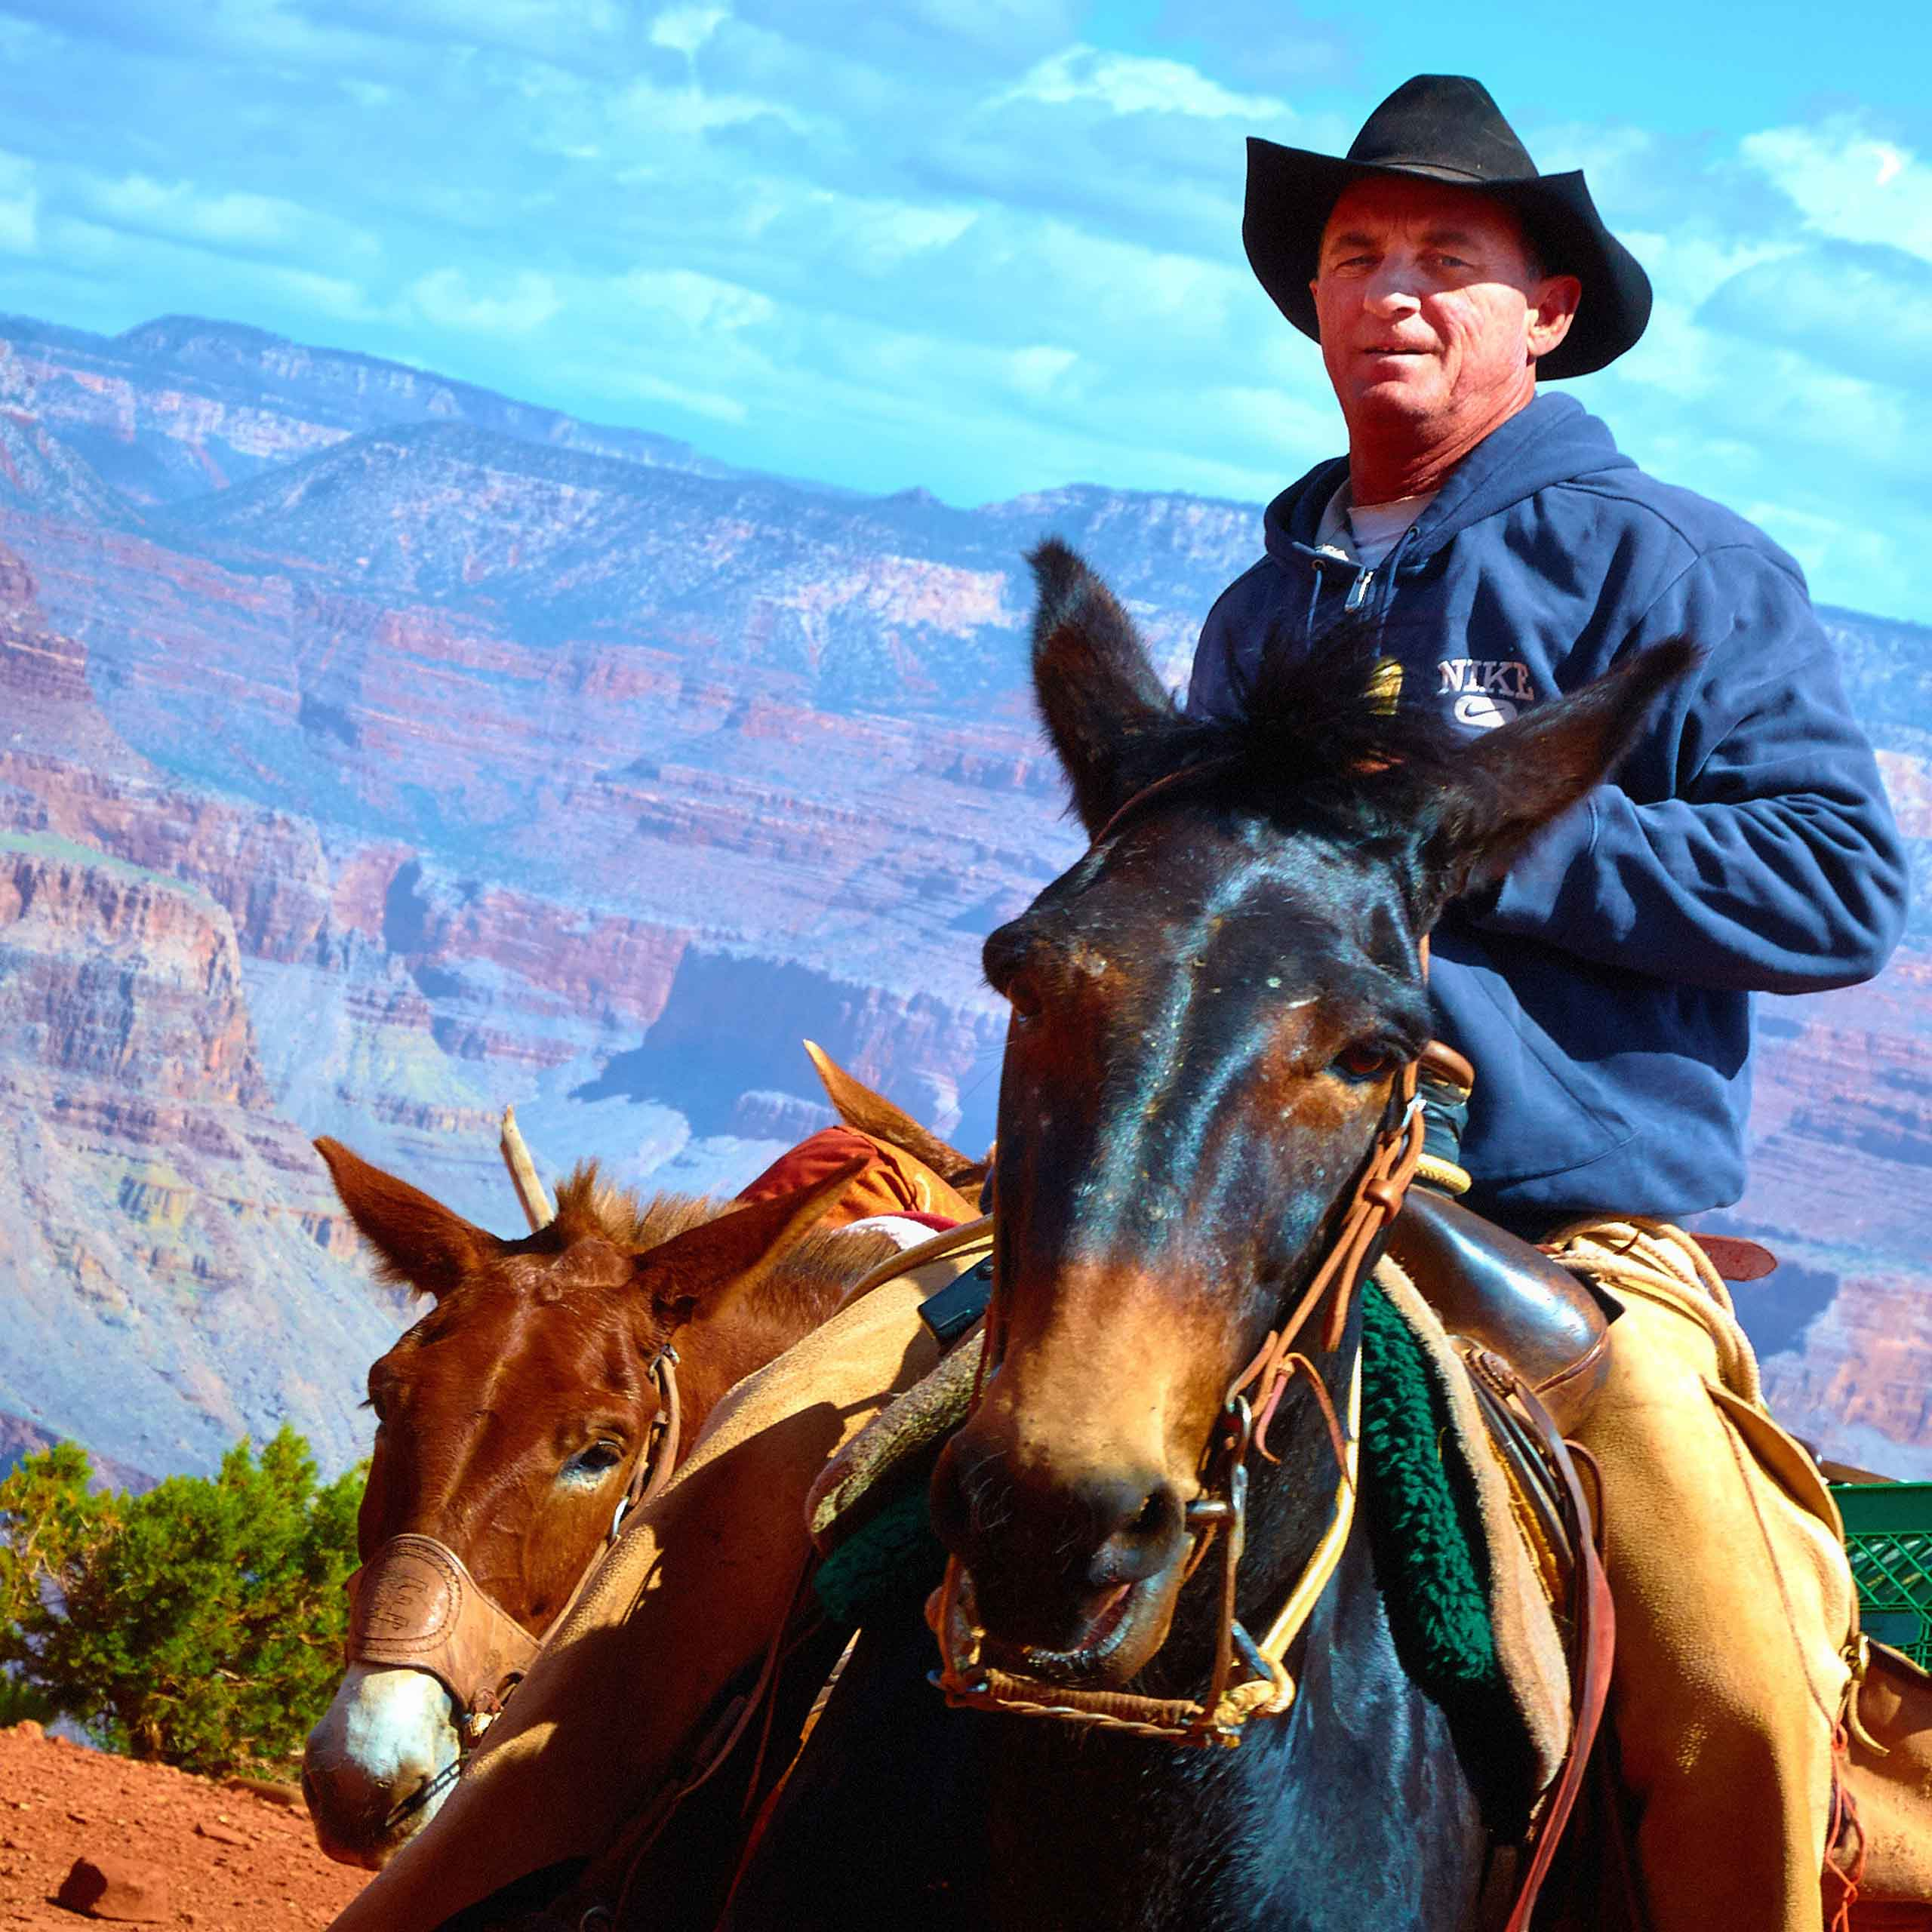 Explore western heritage with the 11th Annual Cowboy Celebration July 25th in Sedona.